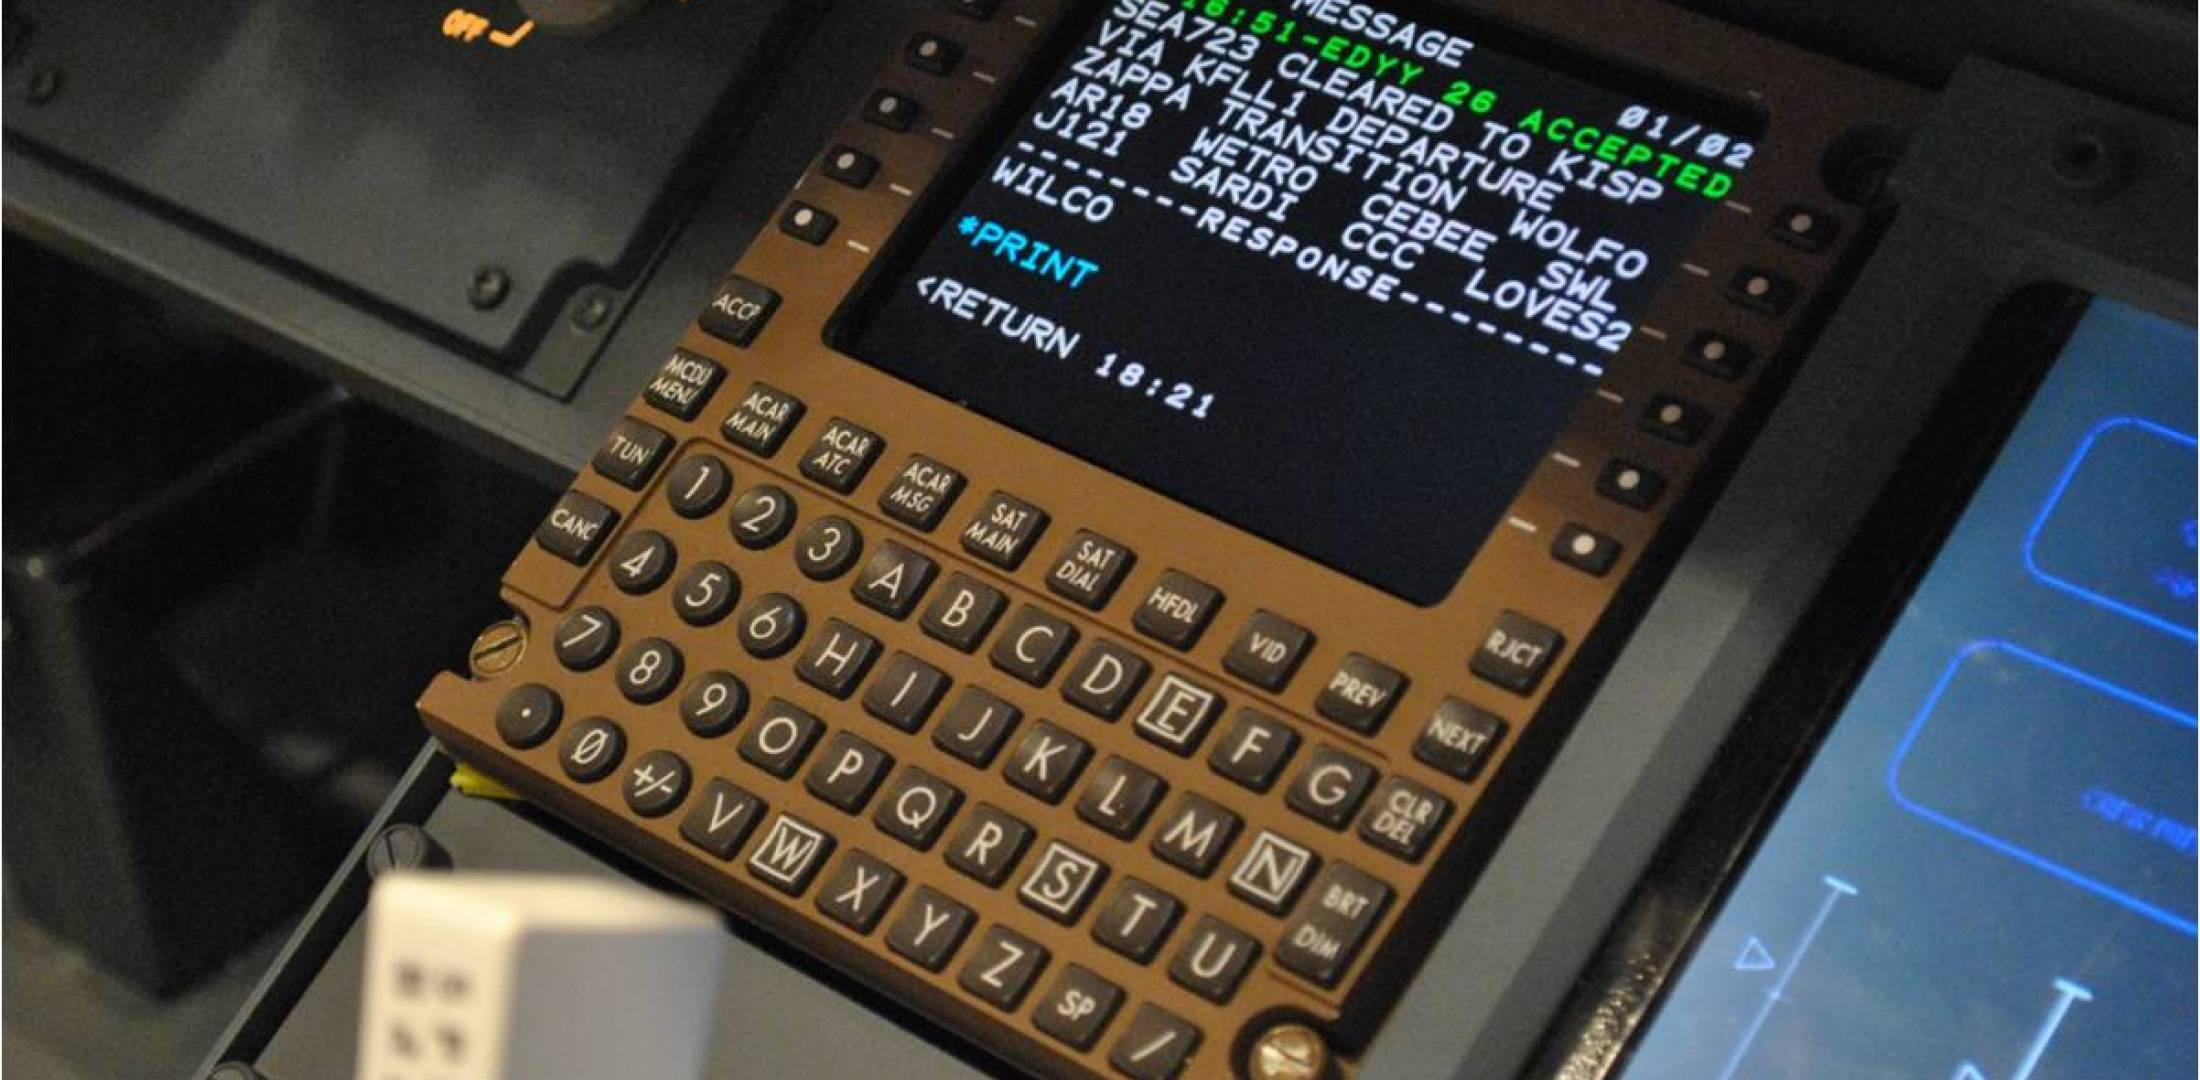 Aircraft multifunction control display with data message